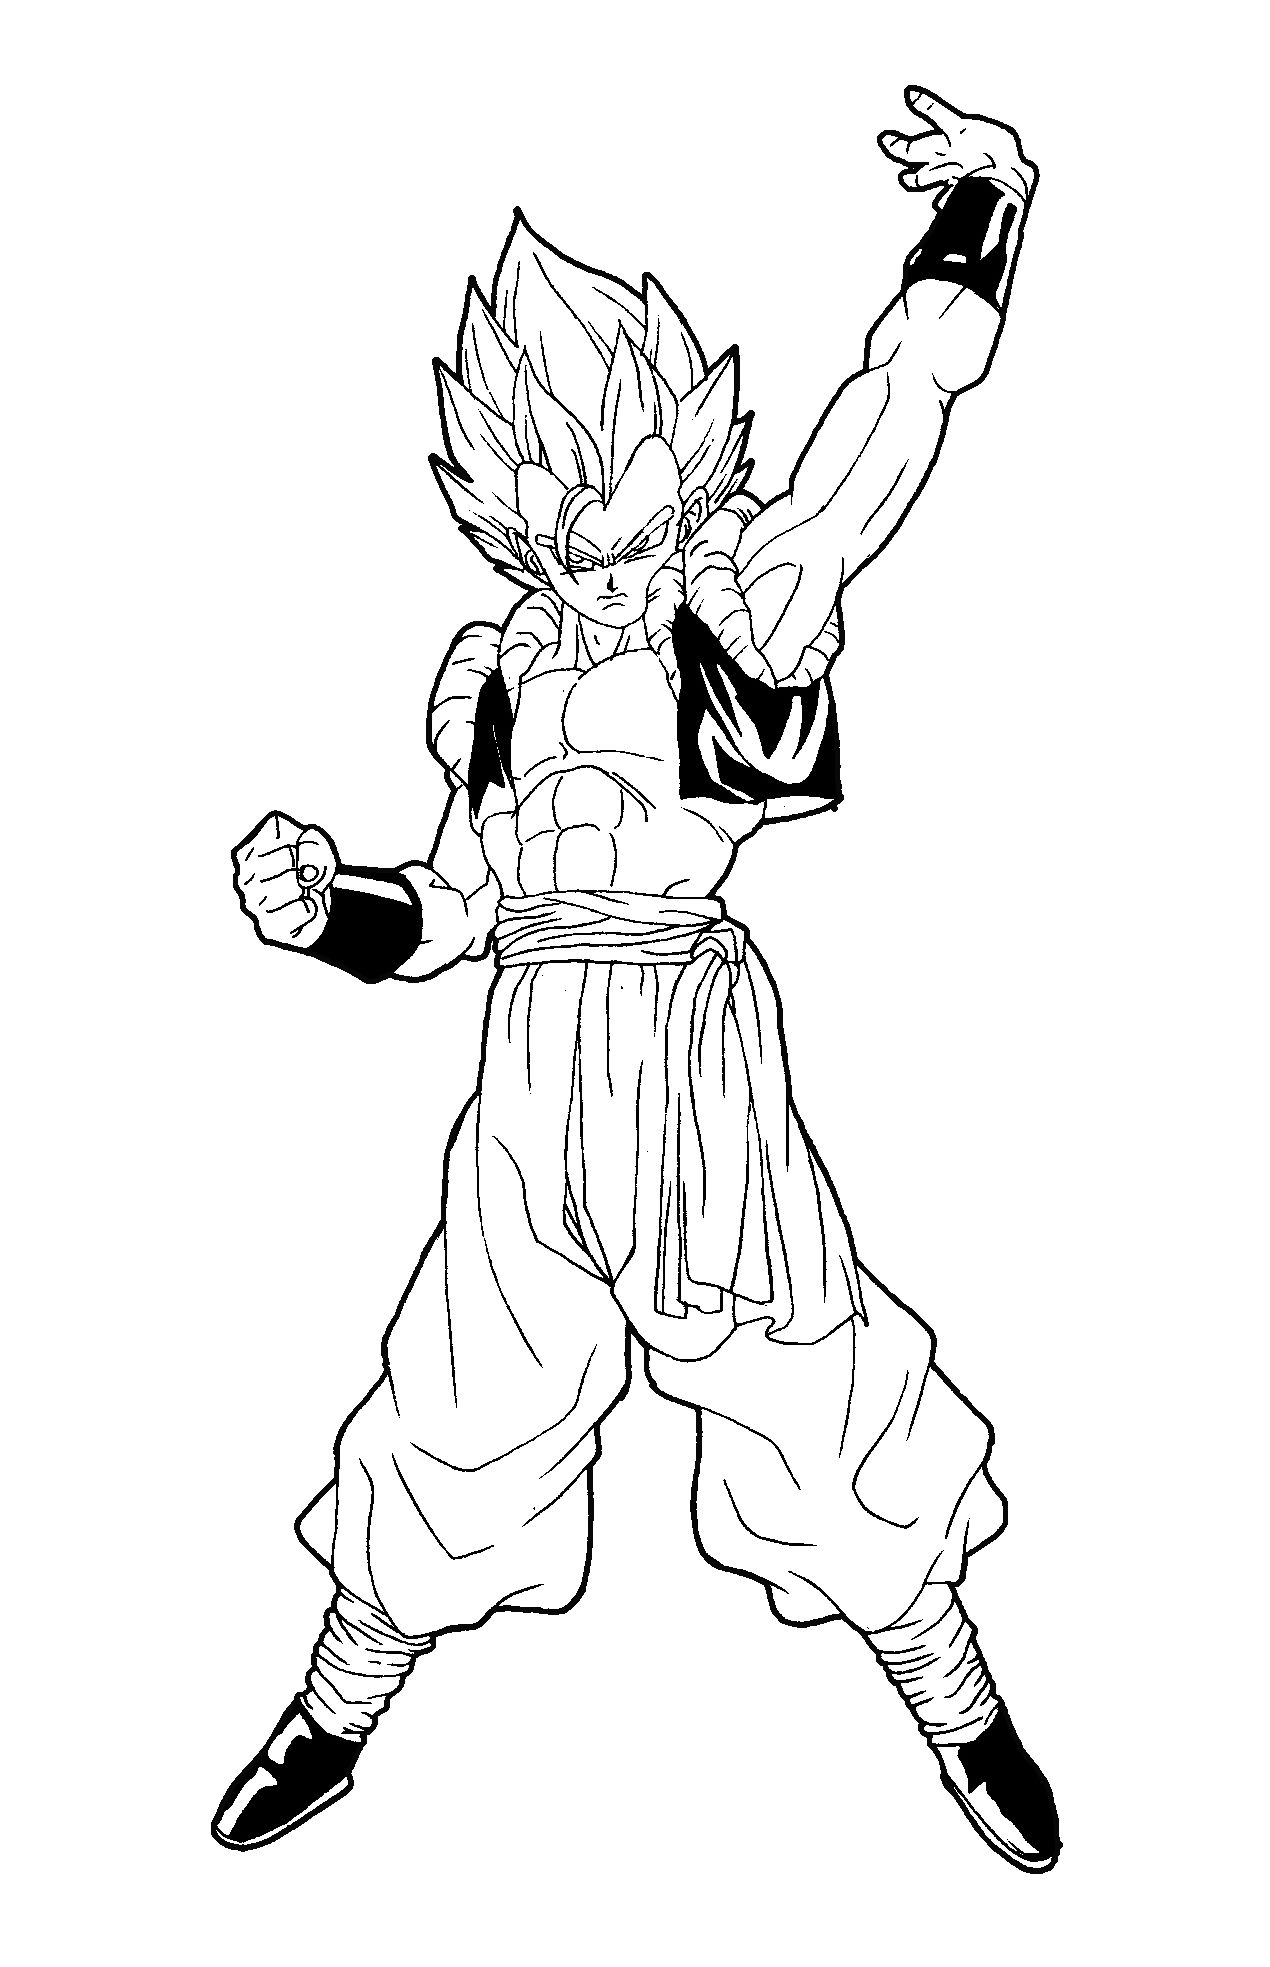 Dragon Ball Z Coloring Pages Coloring books, Coloring